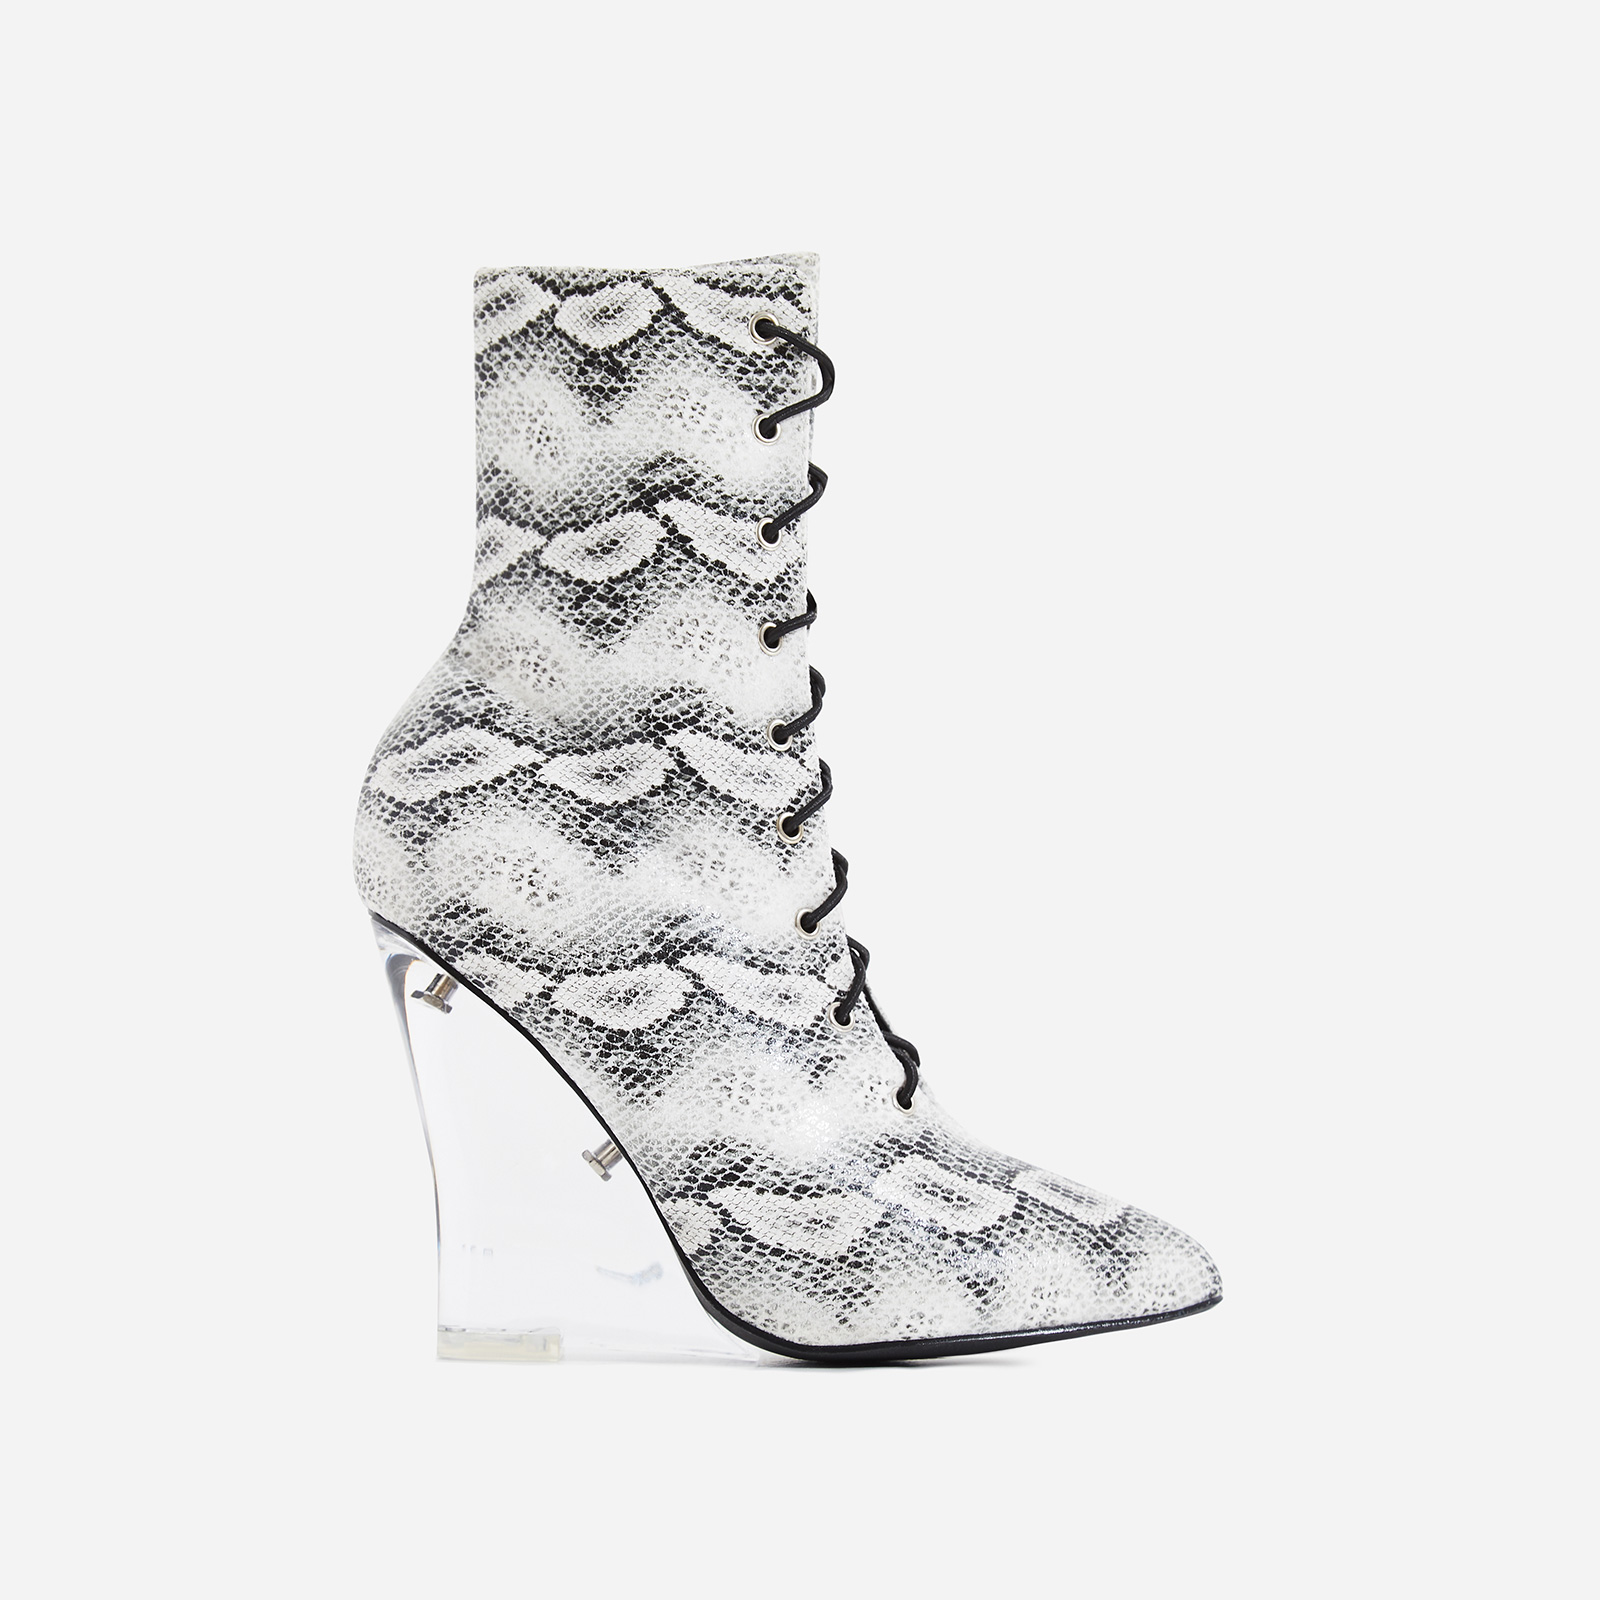 Turnaround Perspex Wedge Lace Up Ankle Boot In grey Snake Print Faux Leather